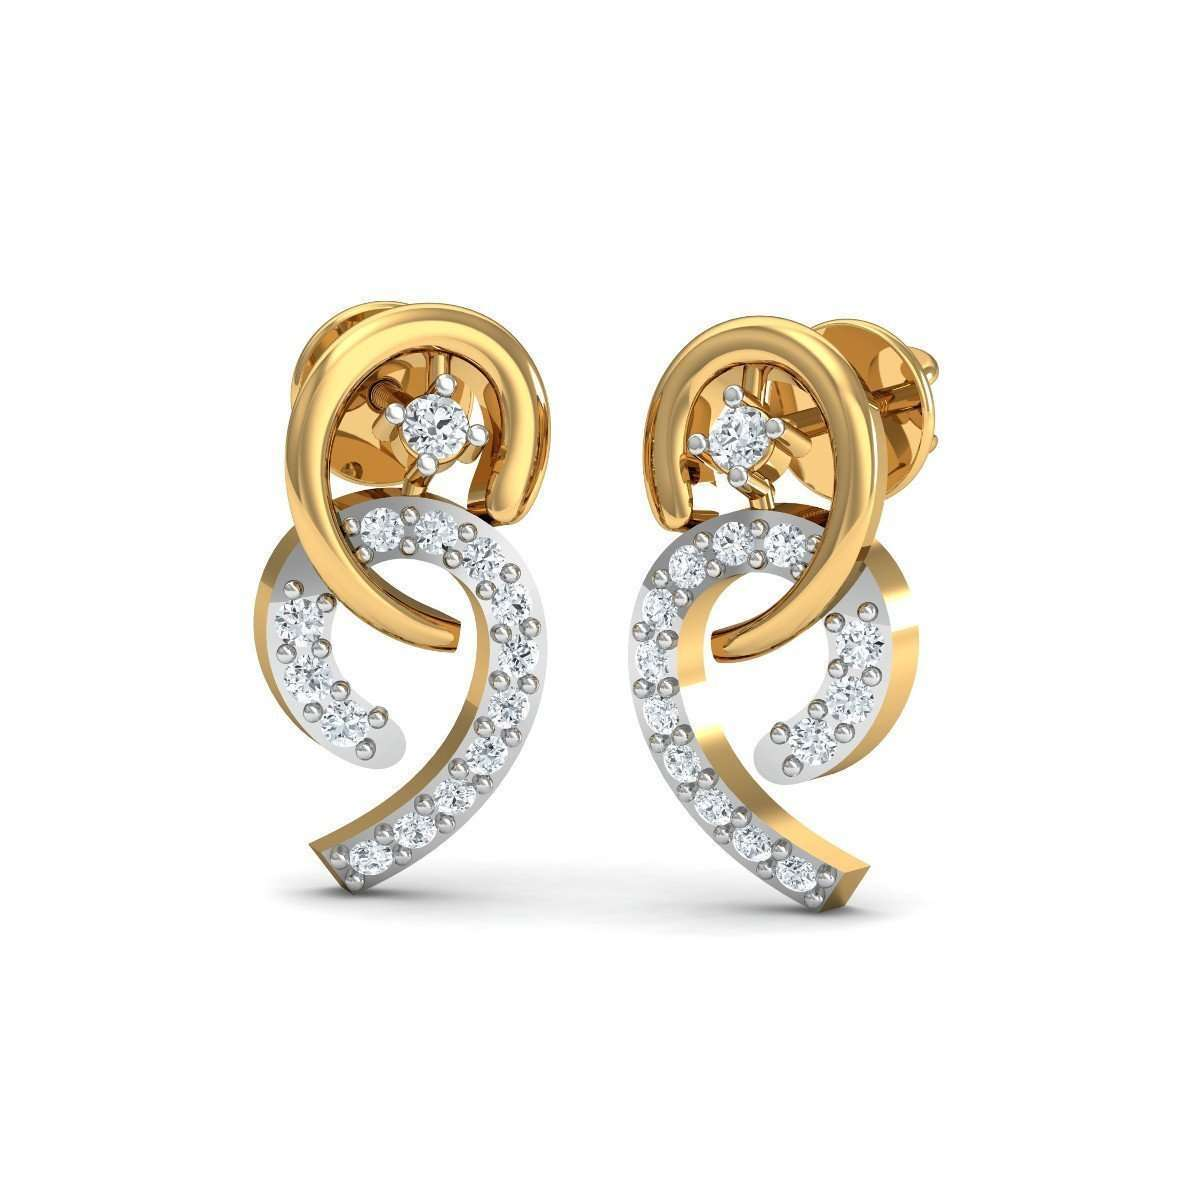 Dangly Diamond Stud Earrings in 18kt Yellow Gold-Diamoire Jewels-JewelStreet US